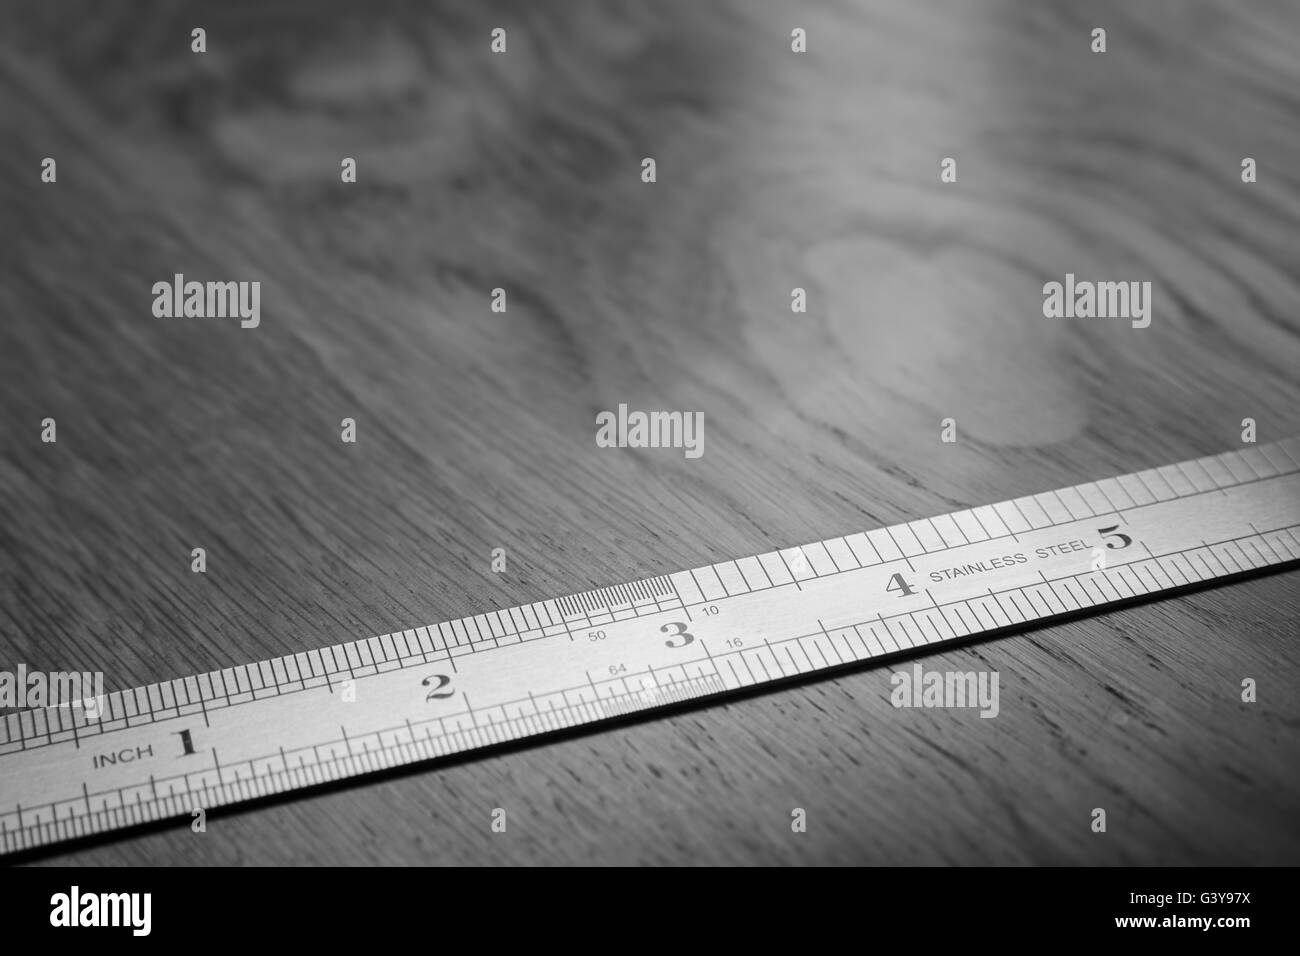 Meral ruler on wooden table. Metric and inches. - Stock Image